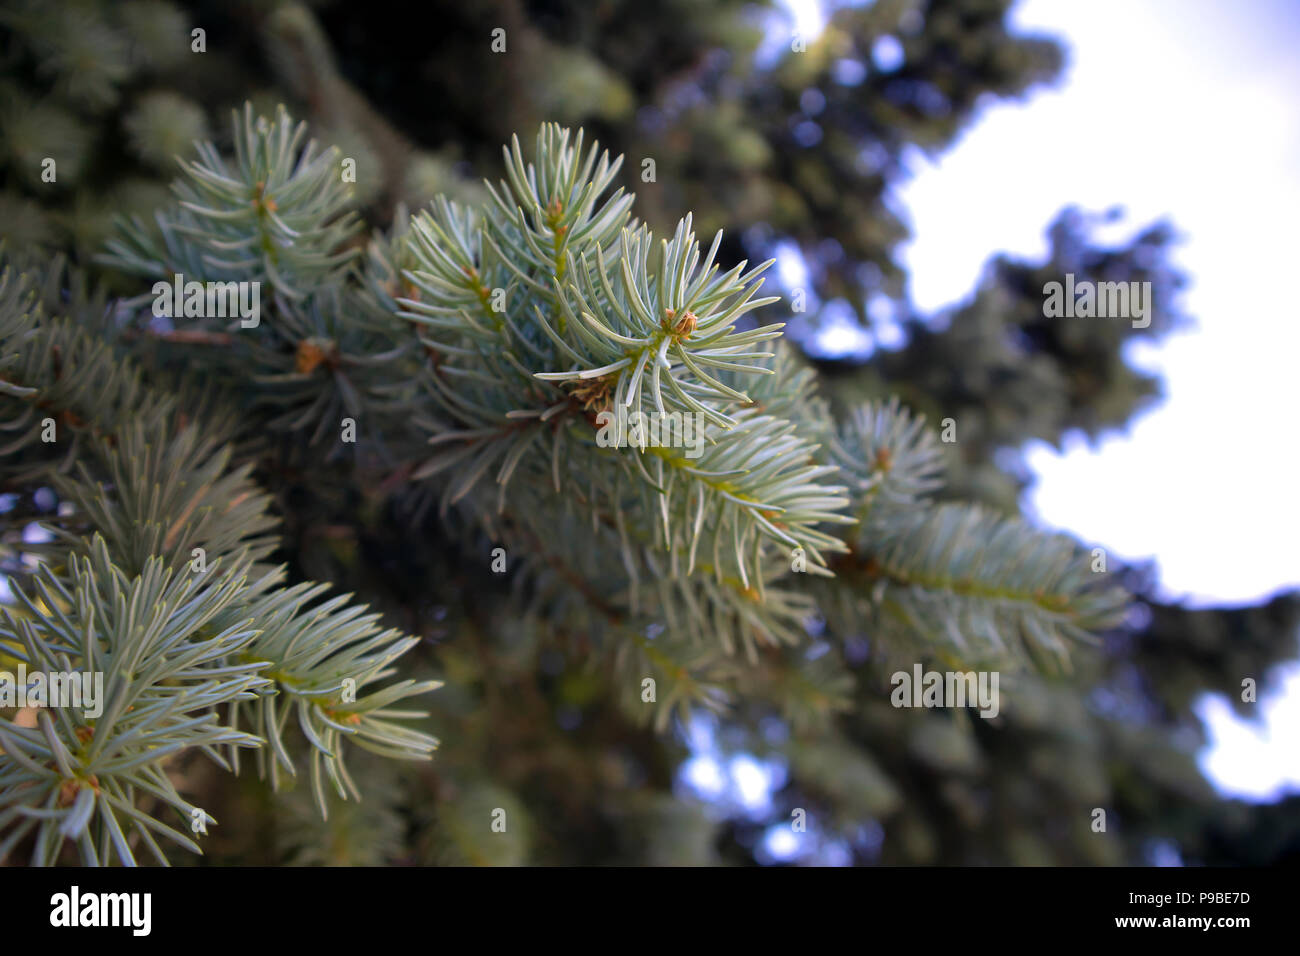 Branch of blue fir with fresh young spruces, bottom view - Stock Image